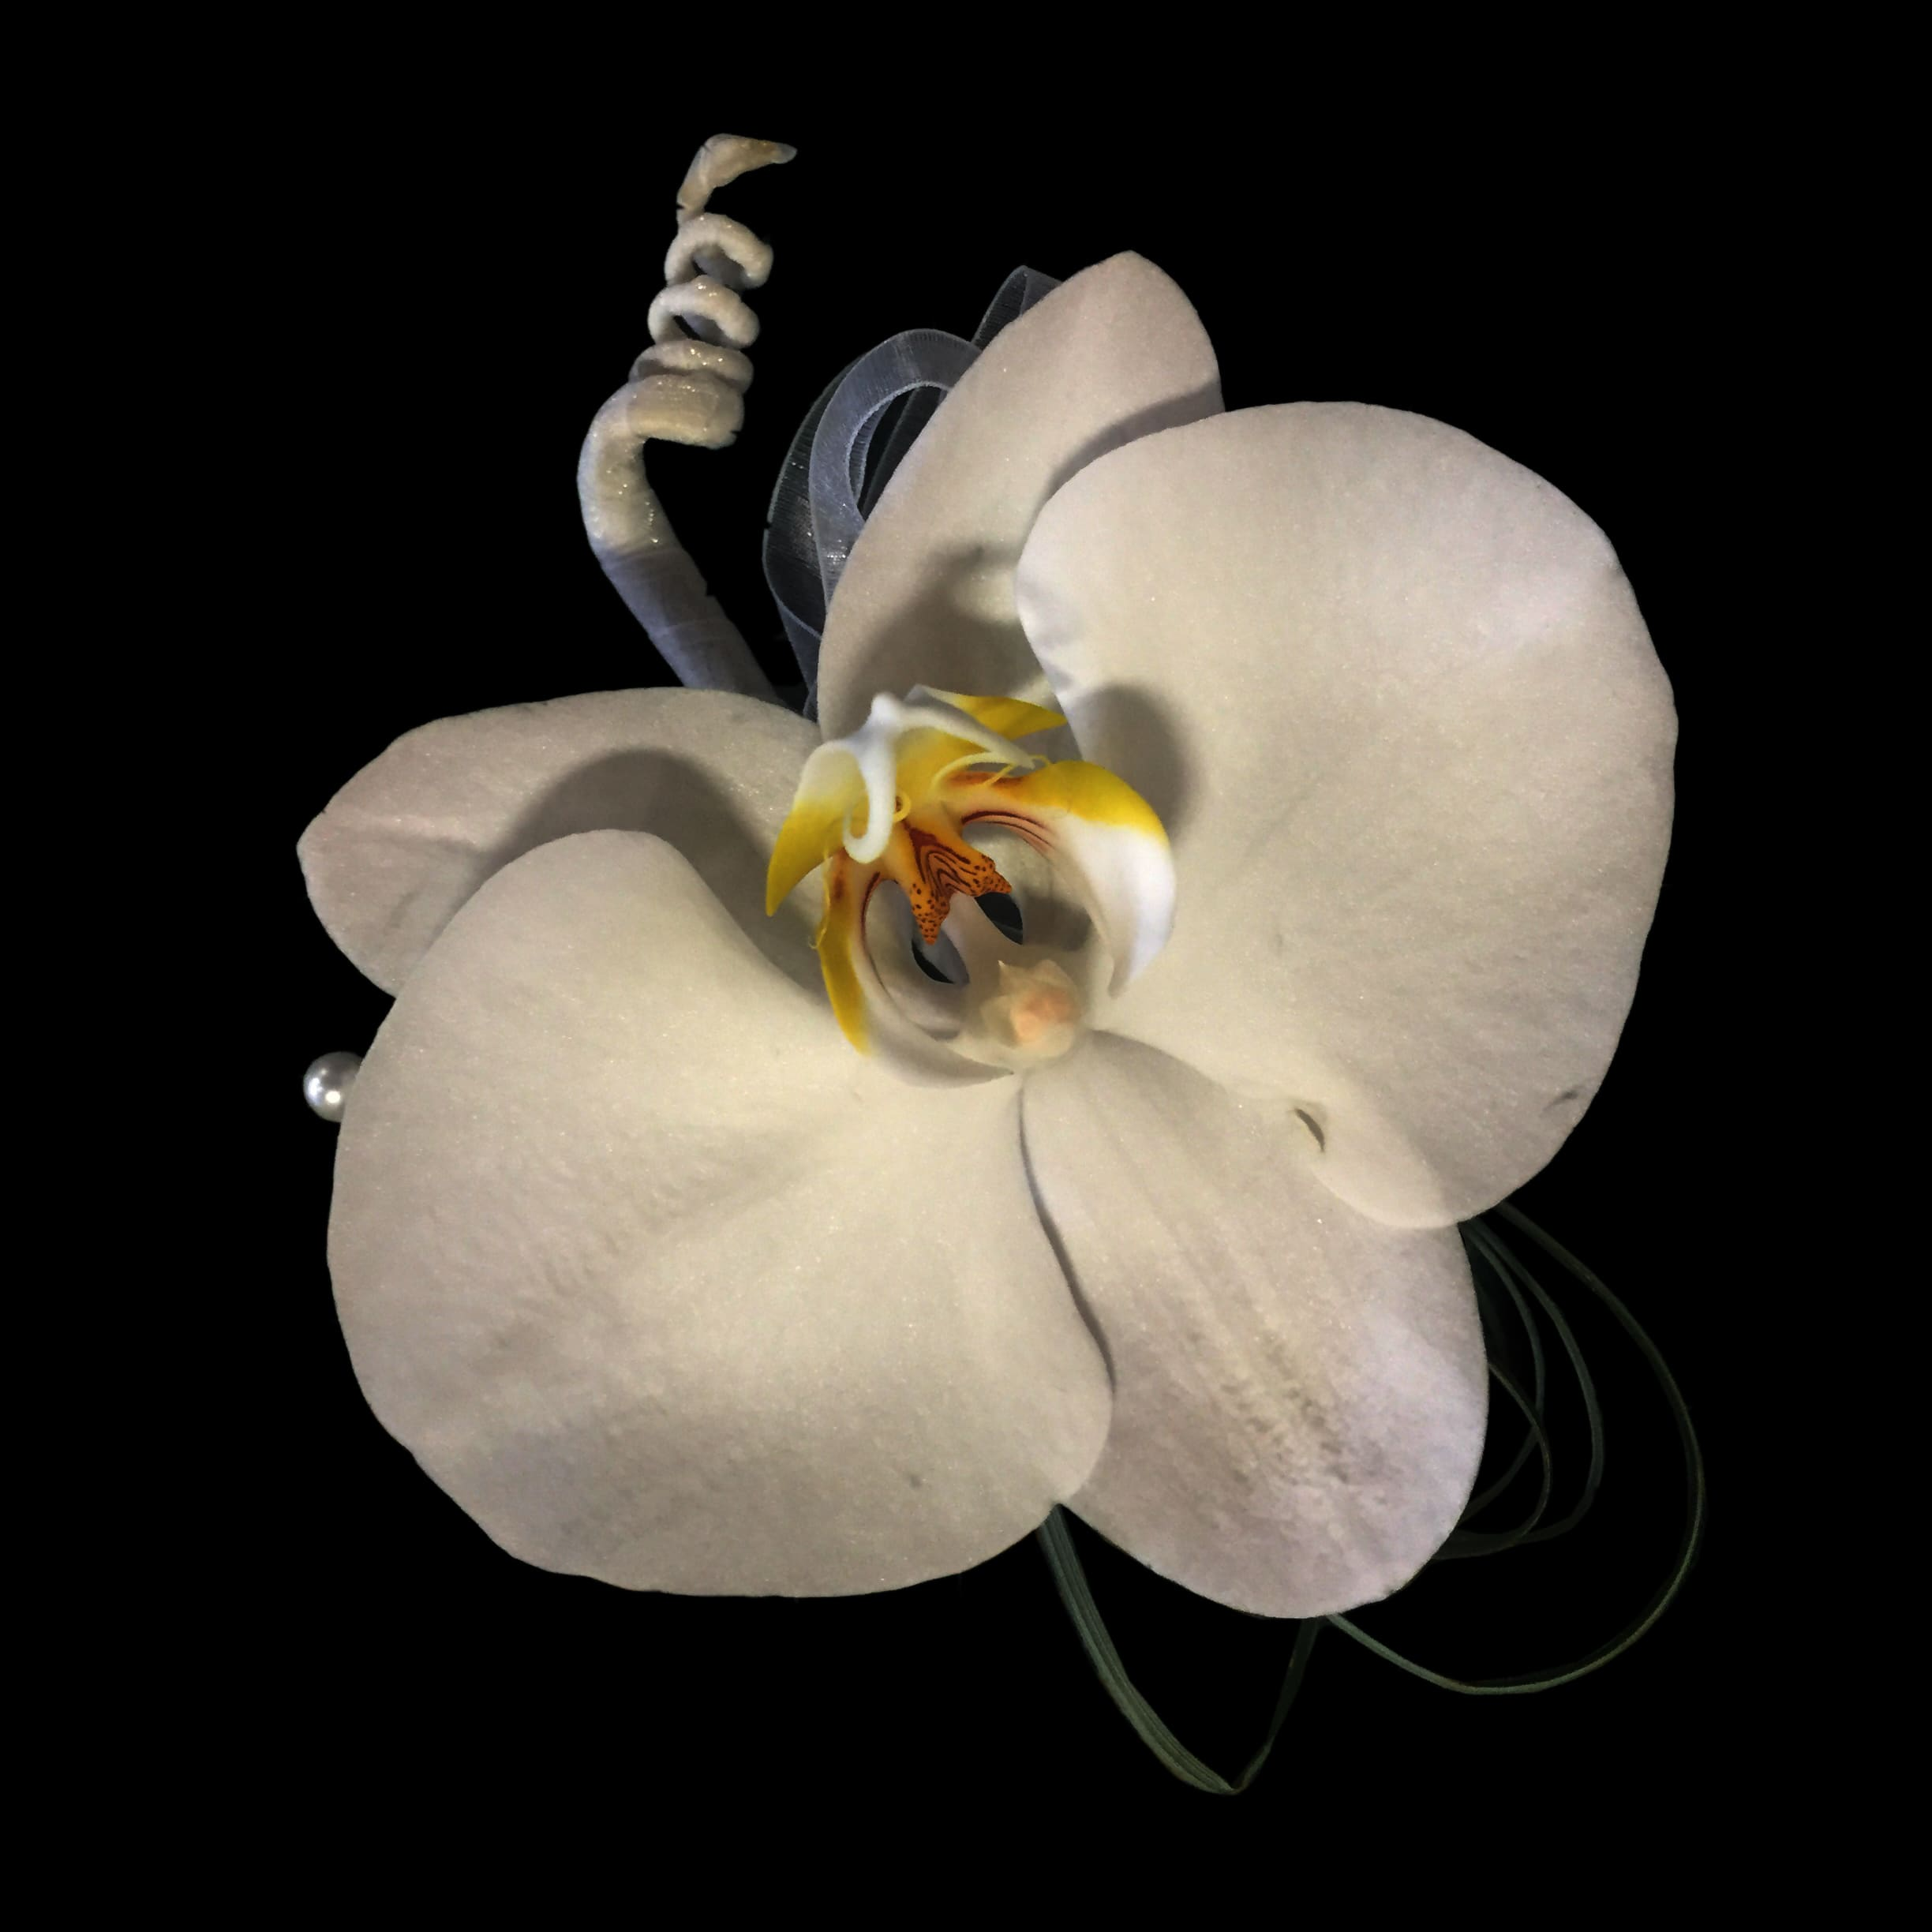 Pin On Corsage Or Boutonniere Made Of Phalaenopsis Orchids By